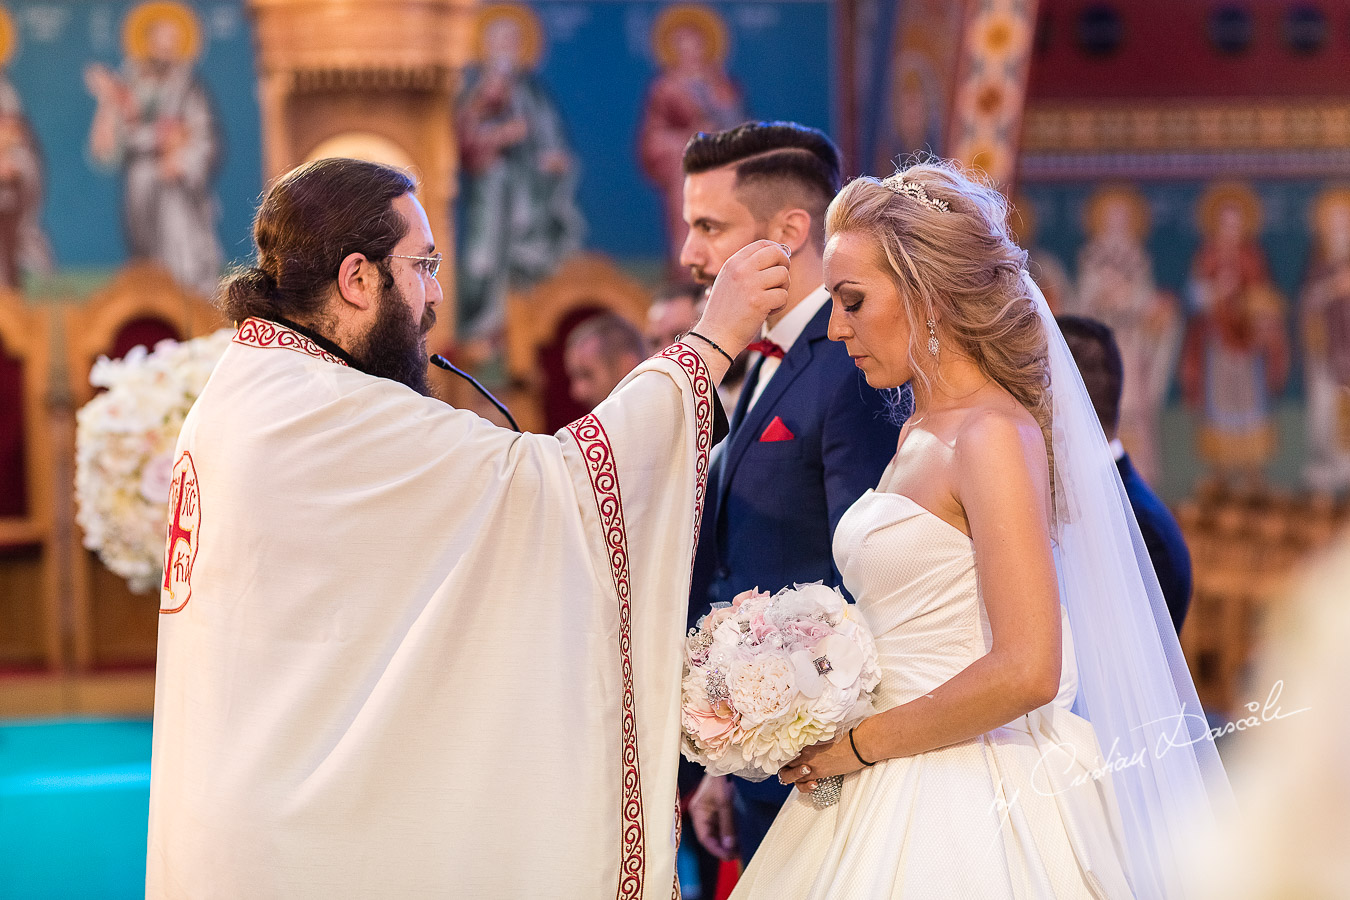 Church ceremony photographed at a wedding in Nicosia by Cyprus Wedding Photographer Cristian Dascalu